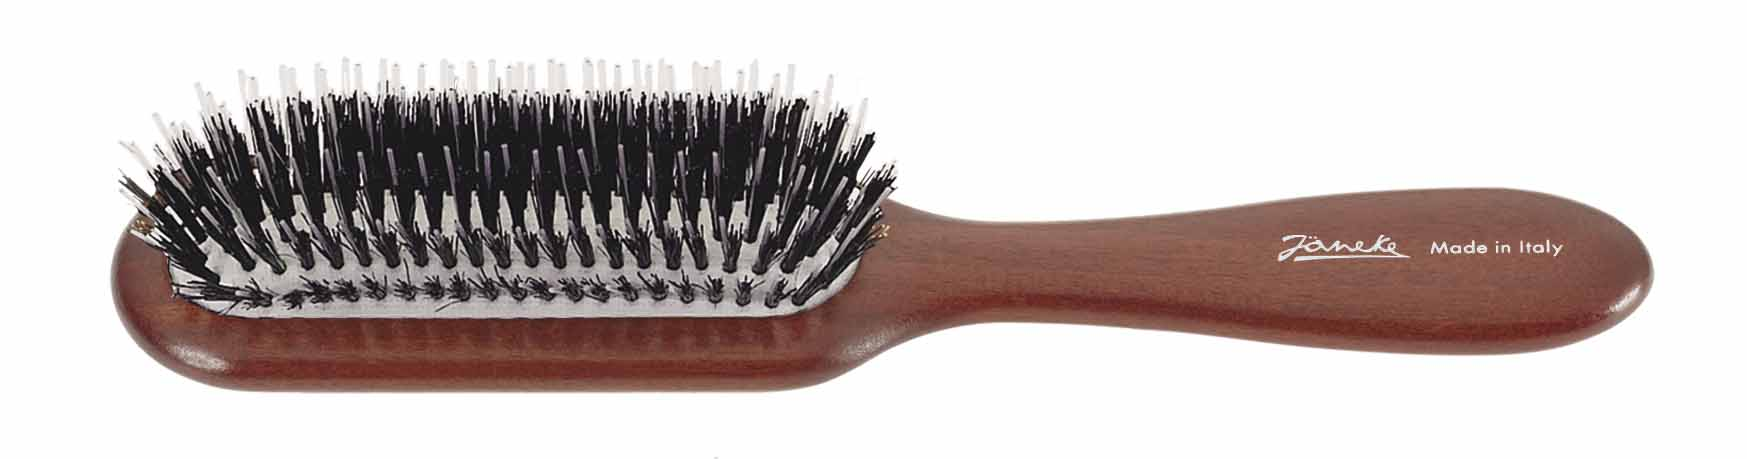 Professional brush bristles with Nylon reinforcement 22 cm Cod. SP19MK